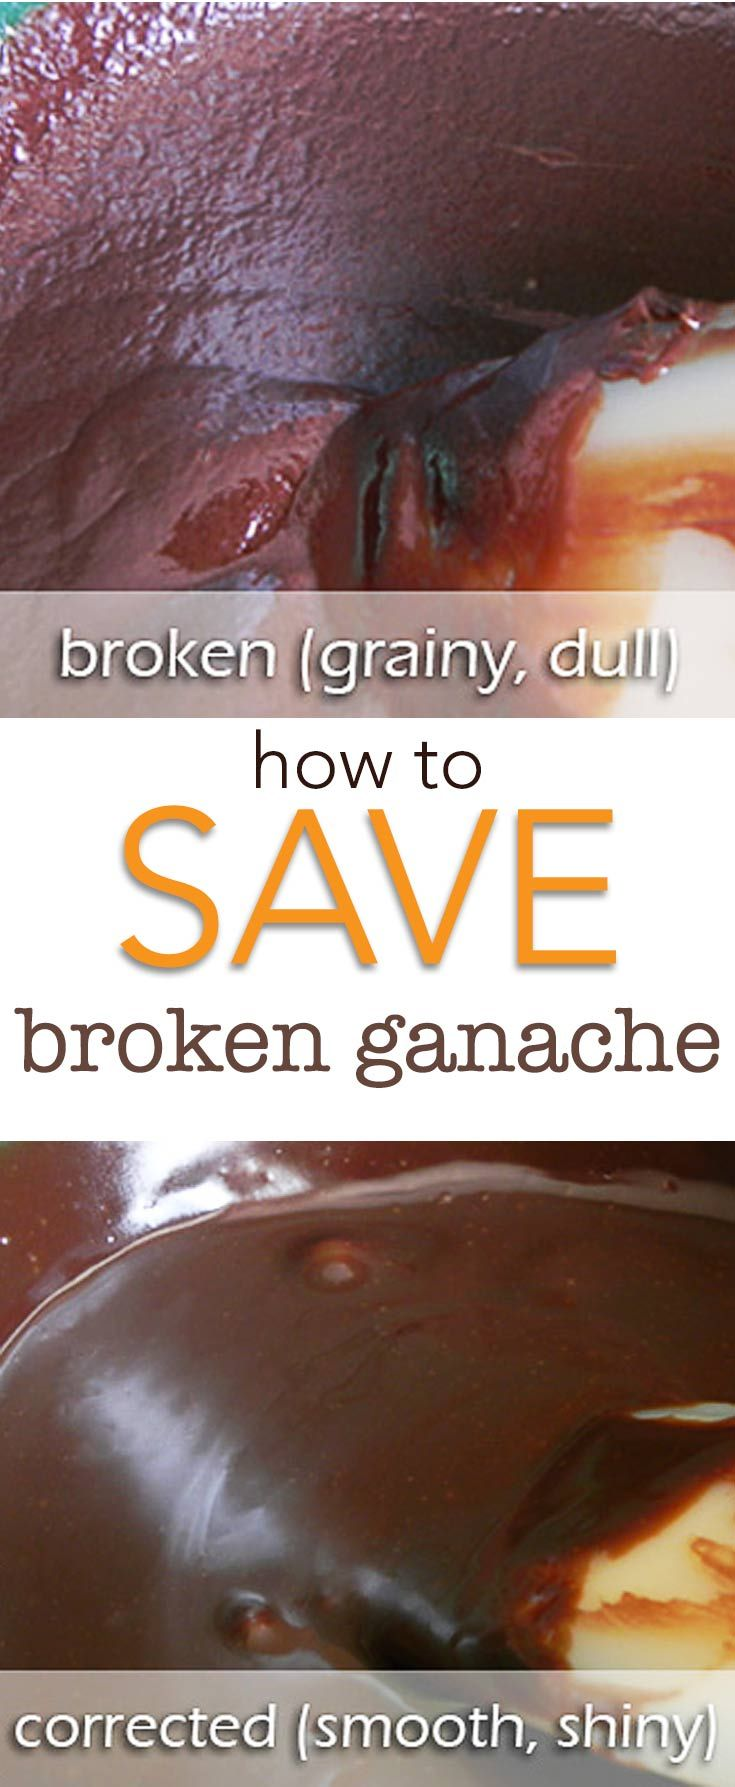 How to Save a Broken Ganache. Don't waste all of that expensive ganache, we can save it in a couple easy steps! Let me show you how.